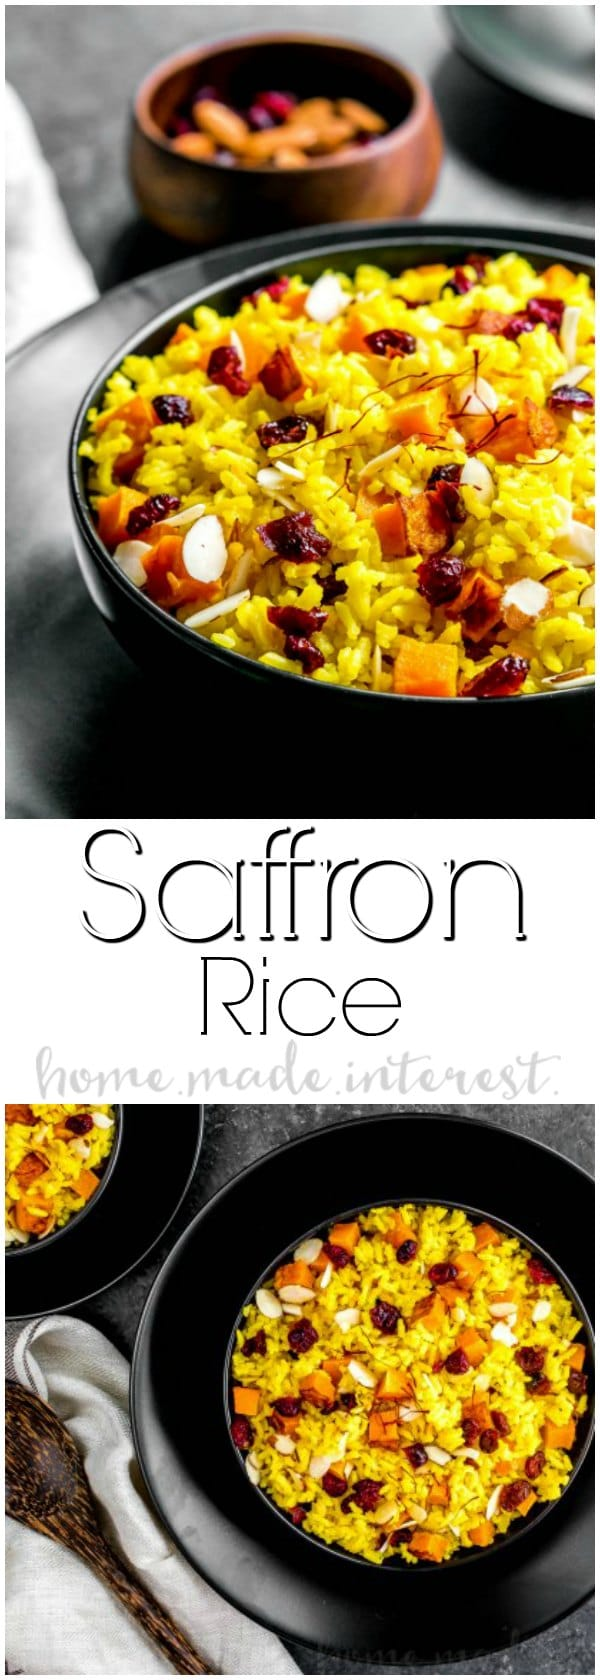 Butternut Squash Saffron Rice is an easy vegan side dish that is sure to impress your guests. Dried cranberries, slivered almonds, sweet roasted butternut squash, and fragrant saffron rice make this delicious saffron rice recipe perfect for fall and a great Thanksgiving side dish! This a vegan rice side dish using almond milk and vegan butter so everyone can enjoy it! #vegan #vegetarian #rice #saffron #coconutmilk #butternutsquash #Thanksgiving #Thanksgivingsidedishes #sidedish #homemadeinterest